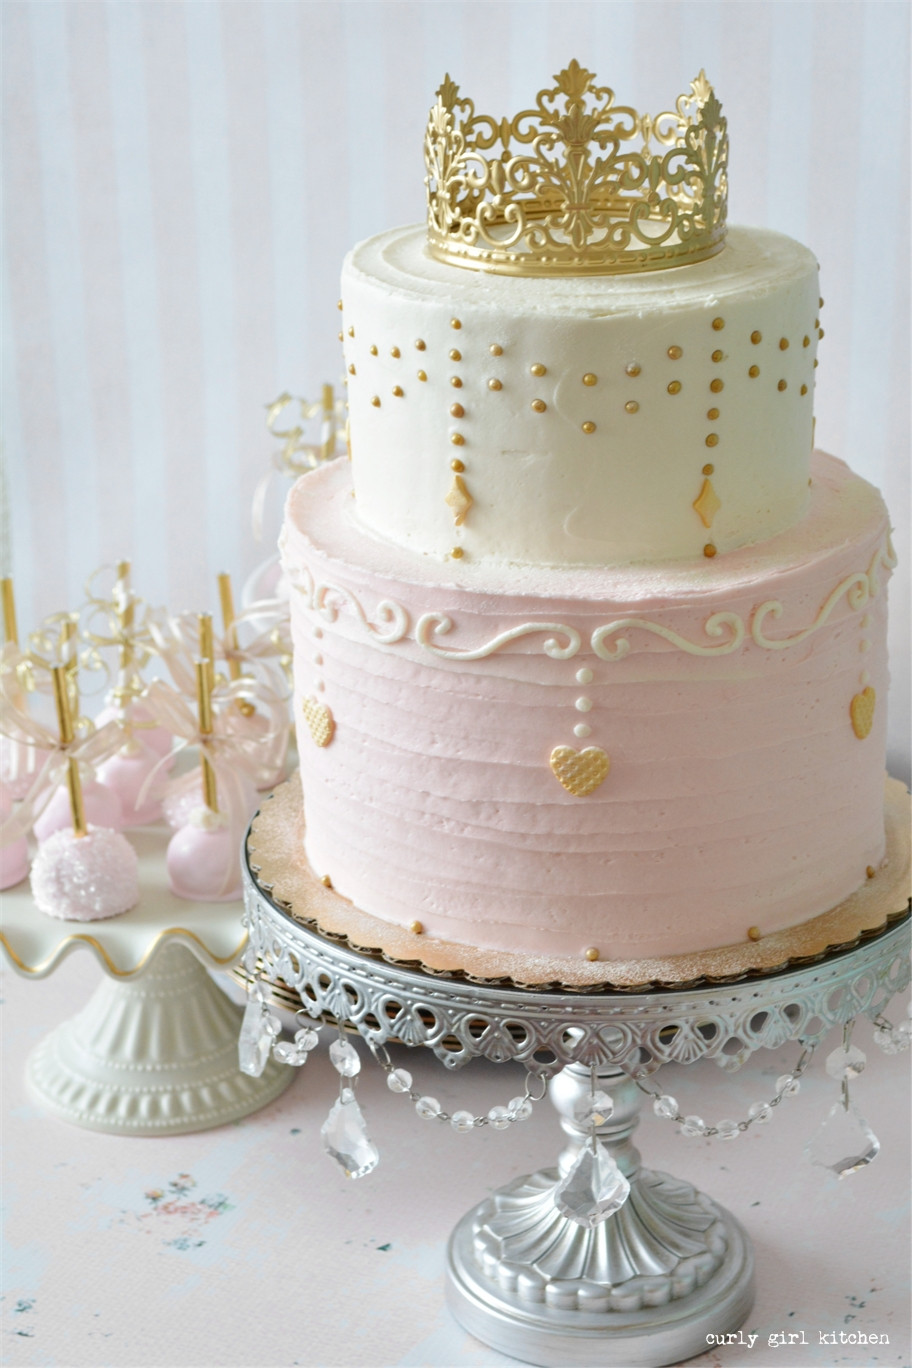 Best ideas about Princes Birthday Cake . Save or Pin Curly Girl Kitchen Pink and Gold Princess Party Cake Now.